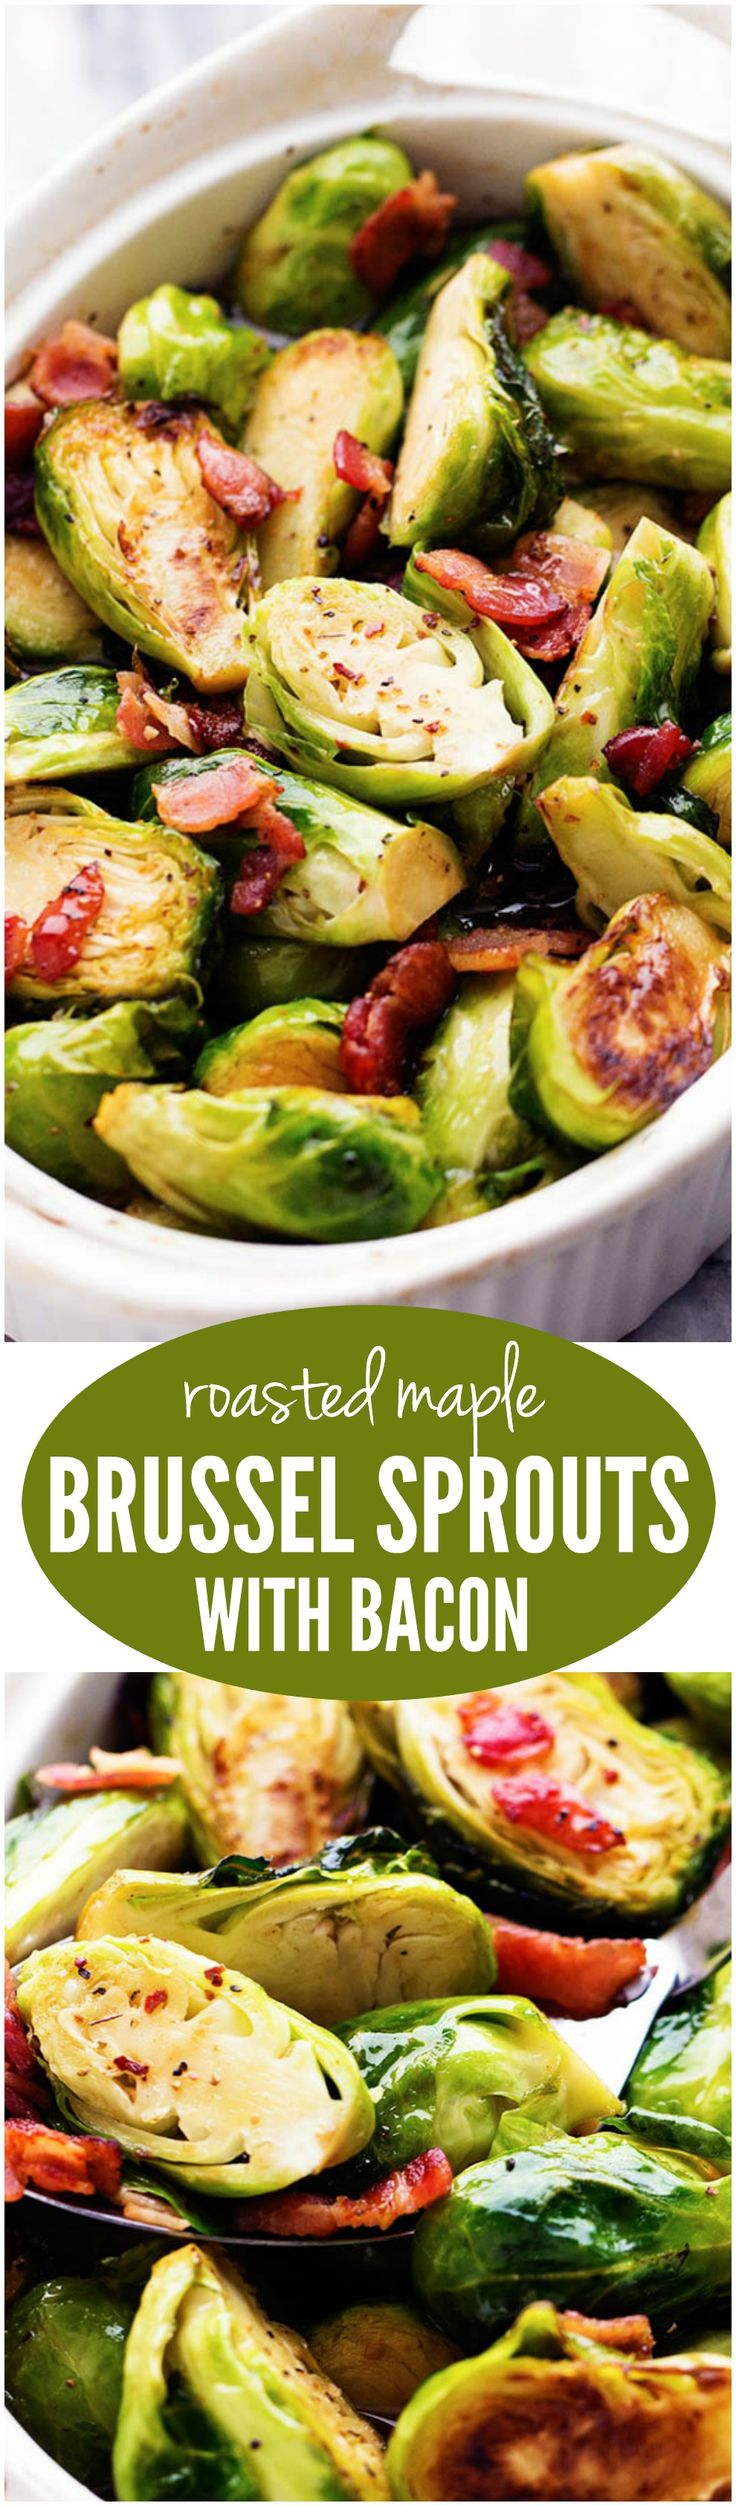 The sweet maple glaze and bacon complement these roasted brussel sprouts perfectly. This will be a side dish that the family won't be able to get enough of!